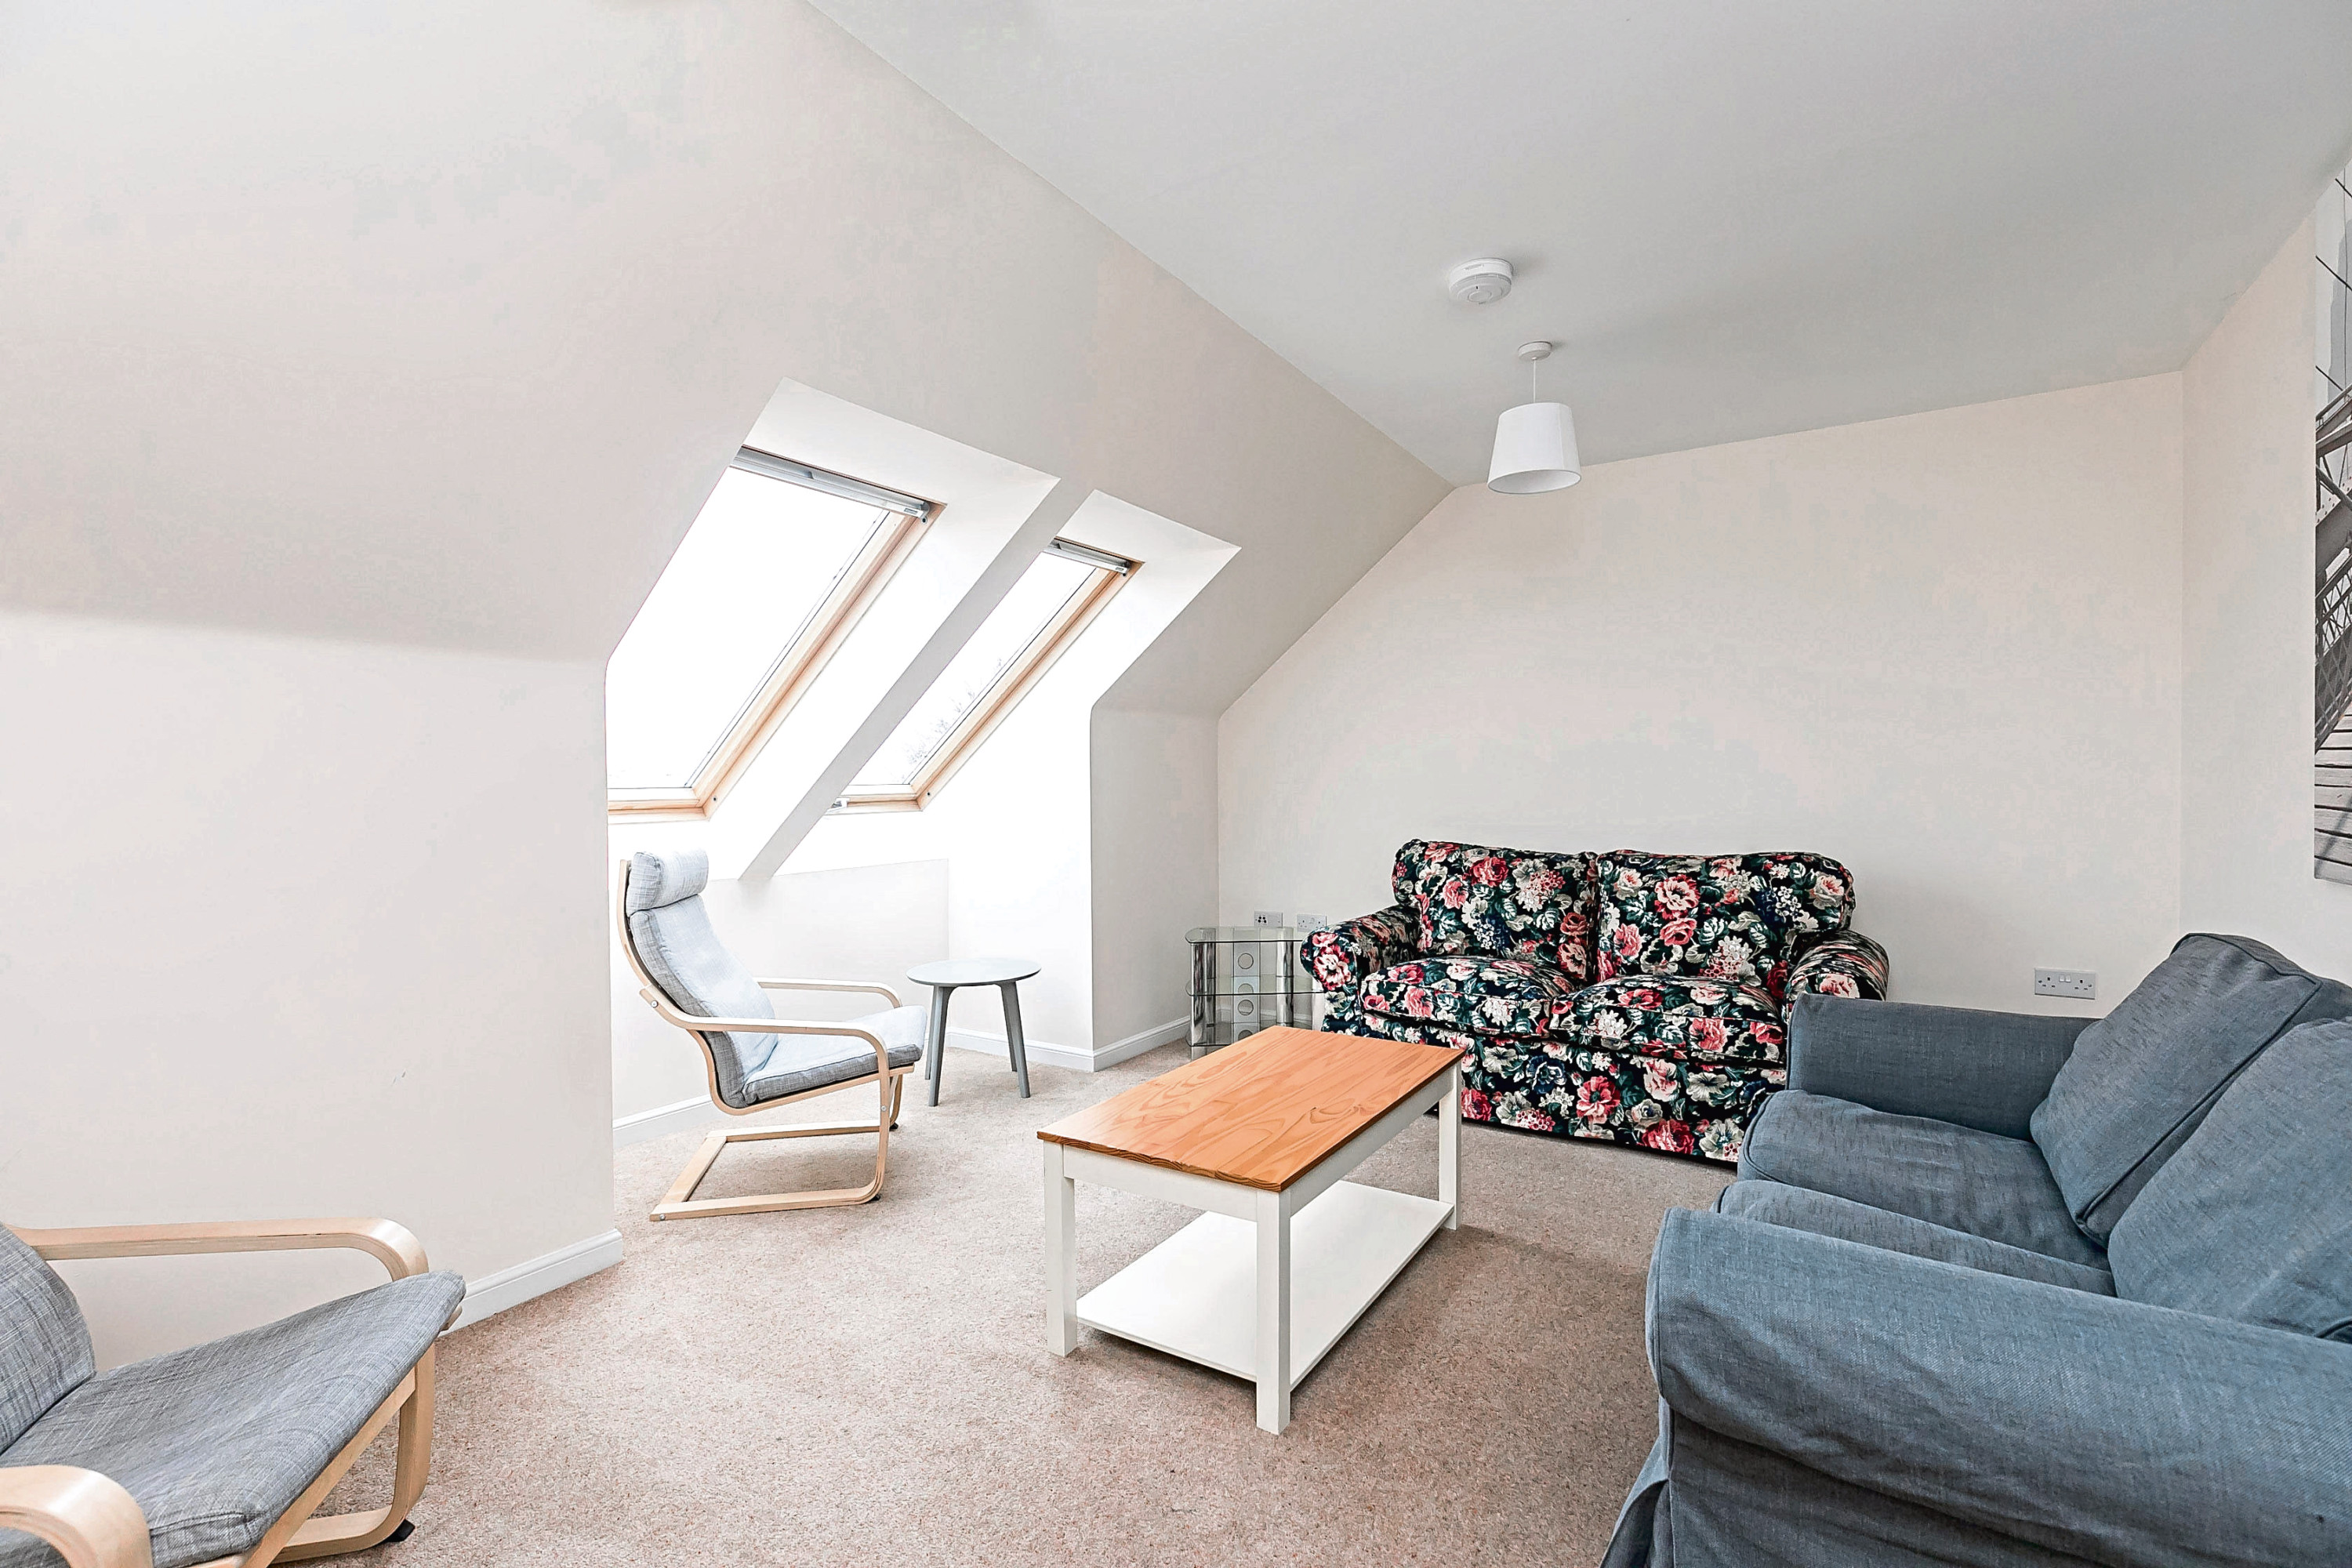 44G Erroll Street, Aberdeen. From Aberdein Considine, for Your Home 09/04/19